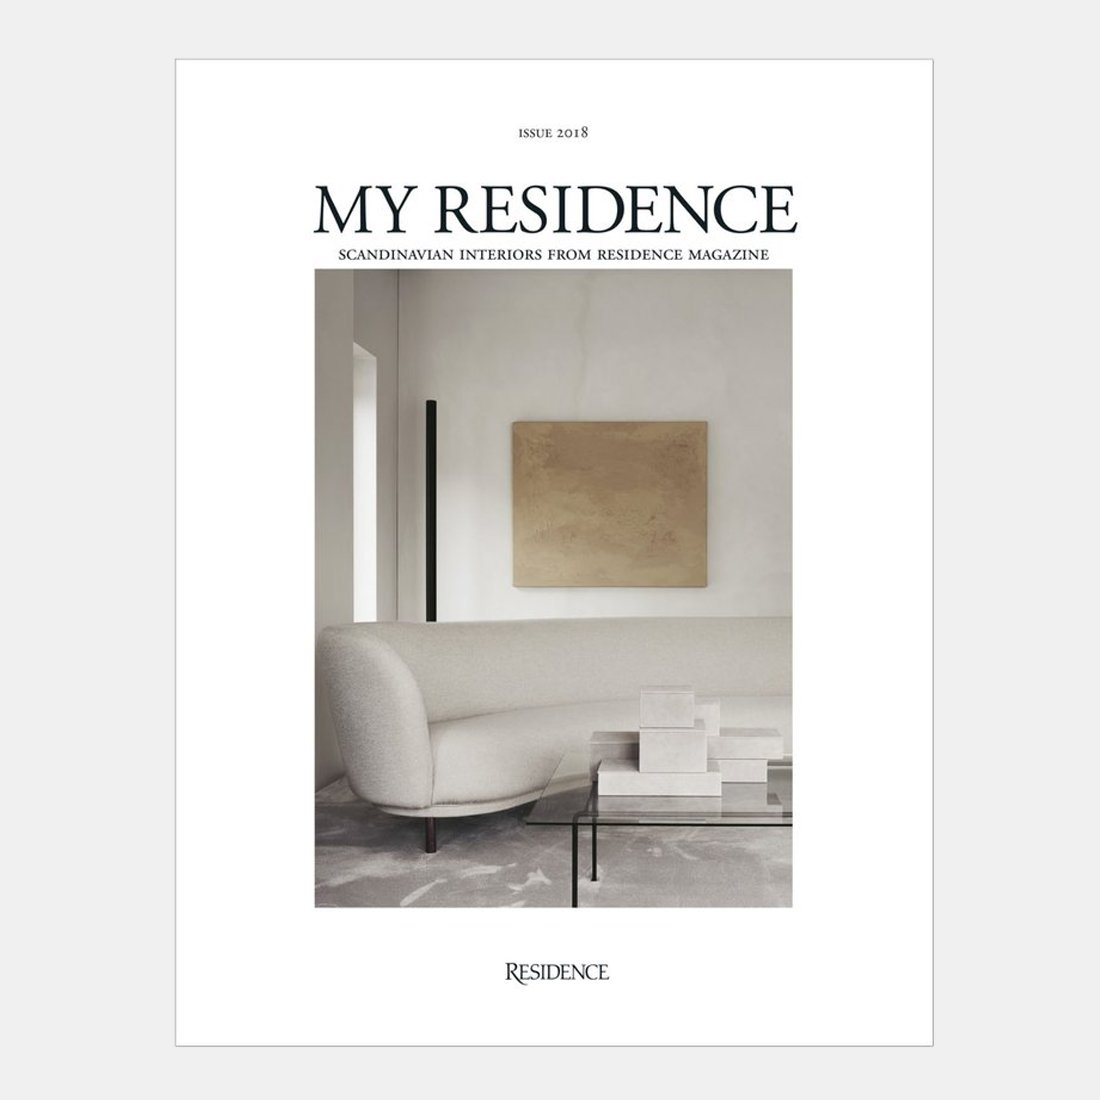 A Biannual Book Of The Best Of Bo Bedre Handily Translated Into English,  Full Of Scandinavian Interior Design Projects And Tips, Inspiring Articles  And ...